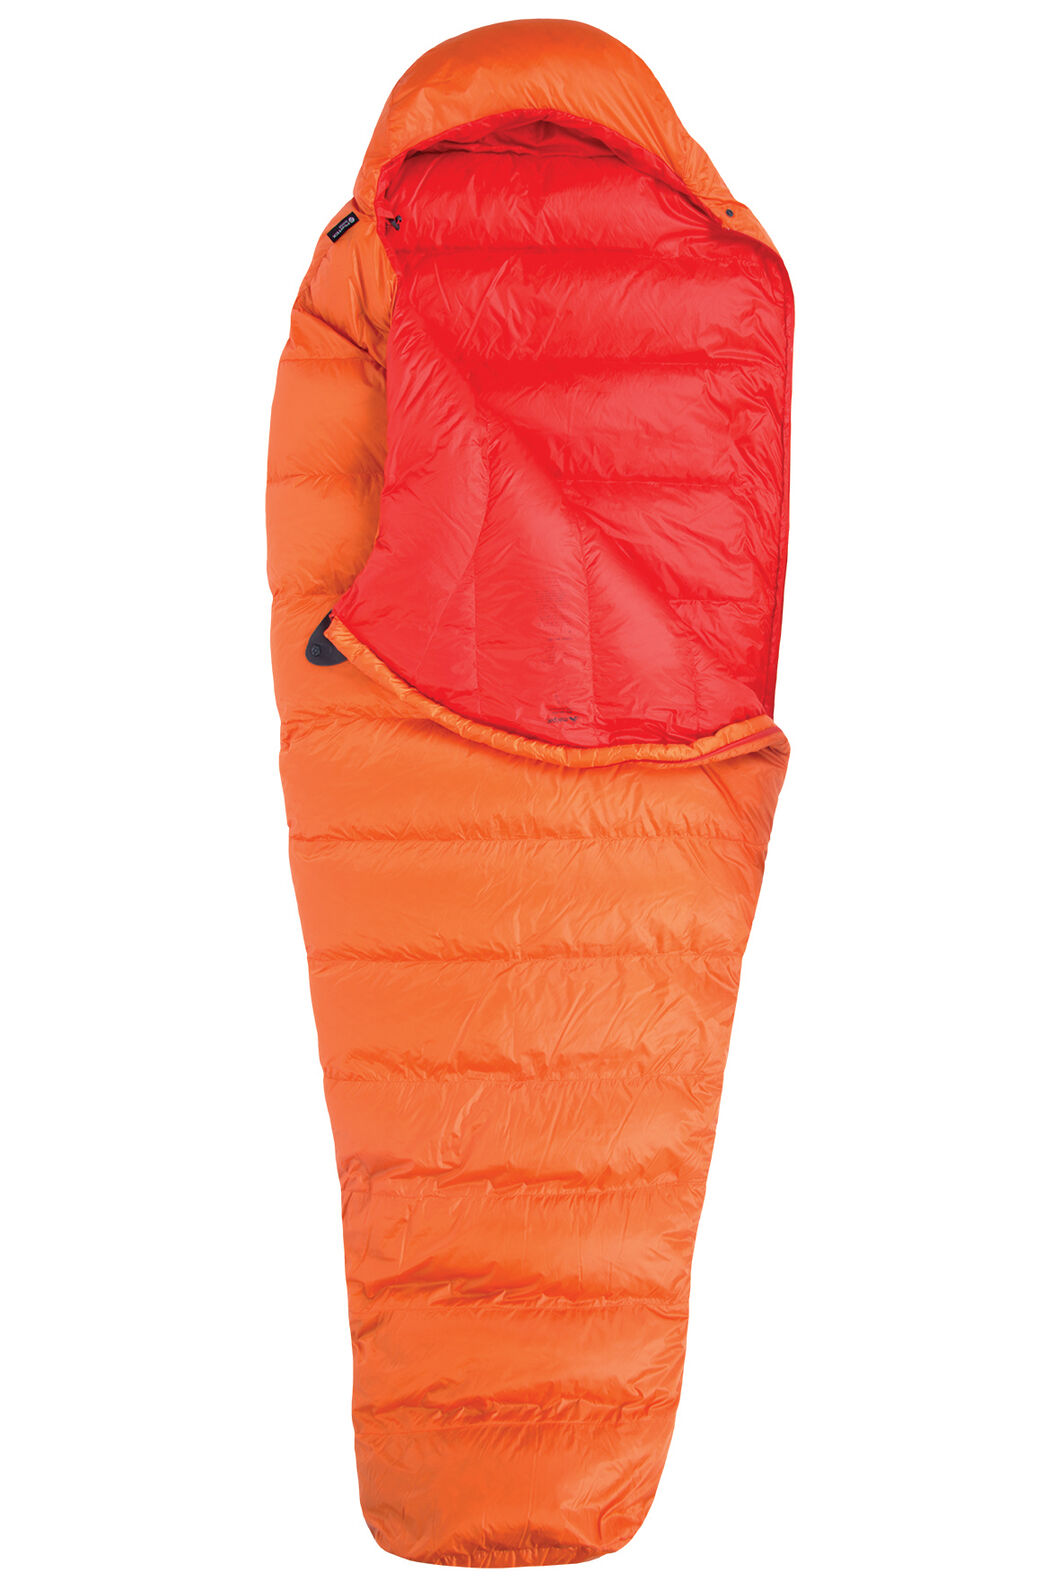 Macpac Epic HyperDRY™ Down 400 Sleeping Bag - Standard, Exuberance/ Indicator, hi-res